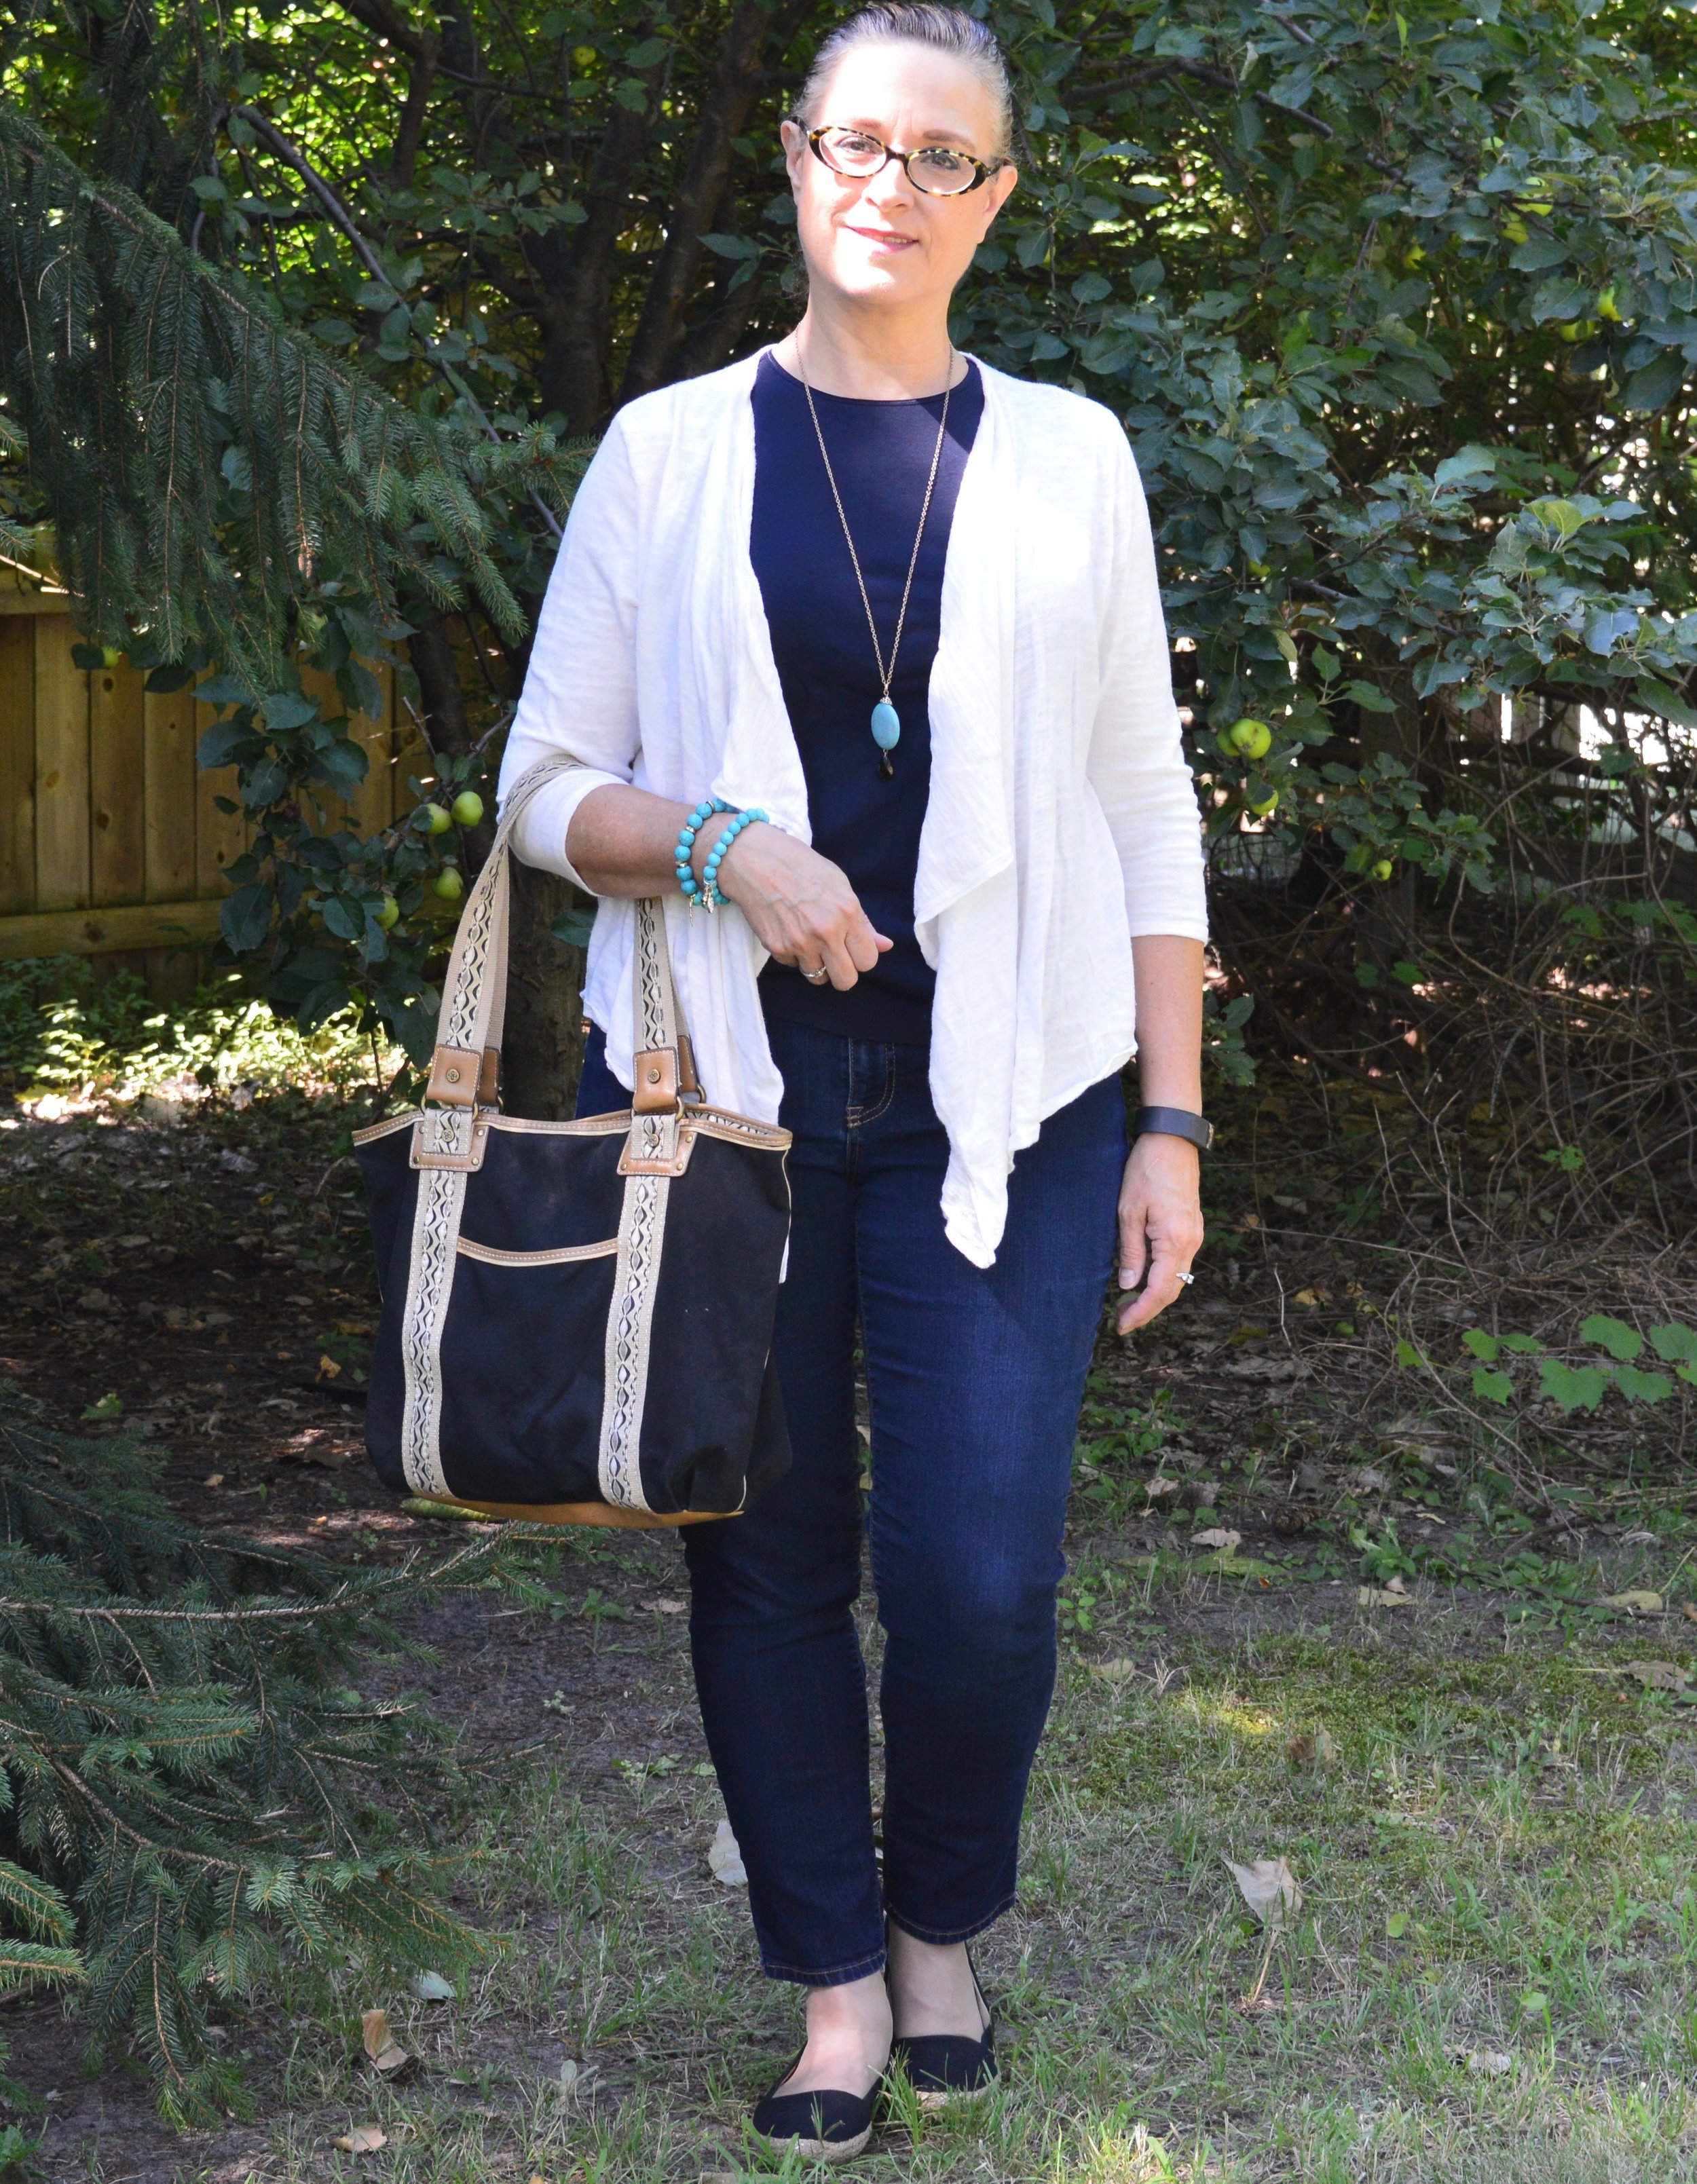 Wearing sweaters in the summer - cream waterfall cardi